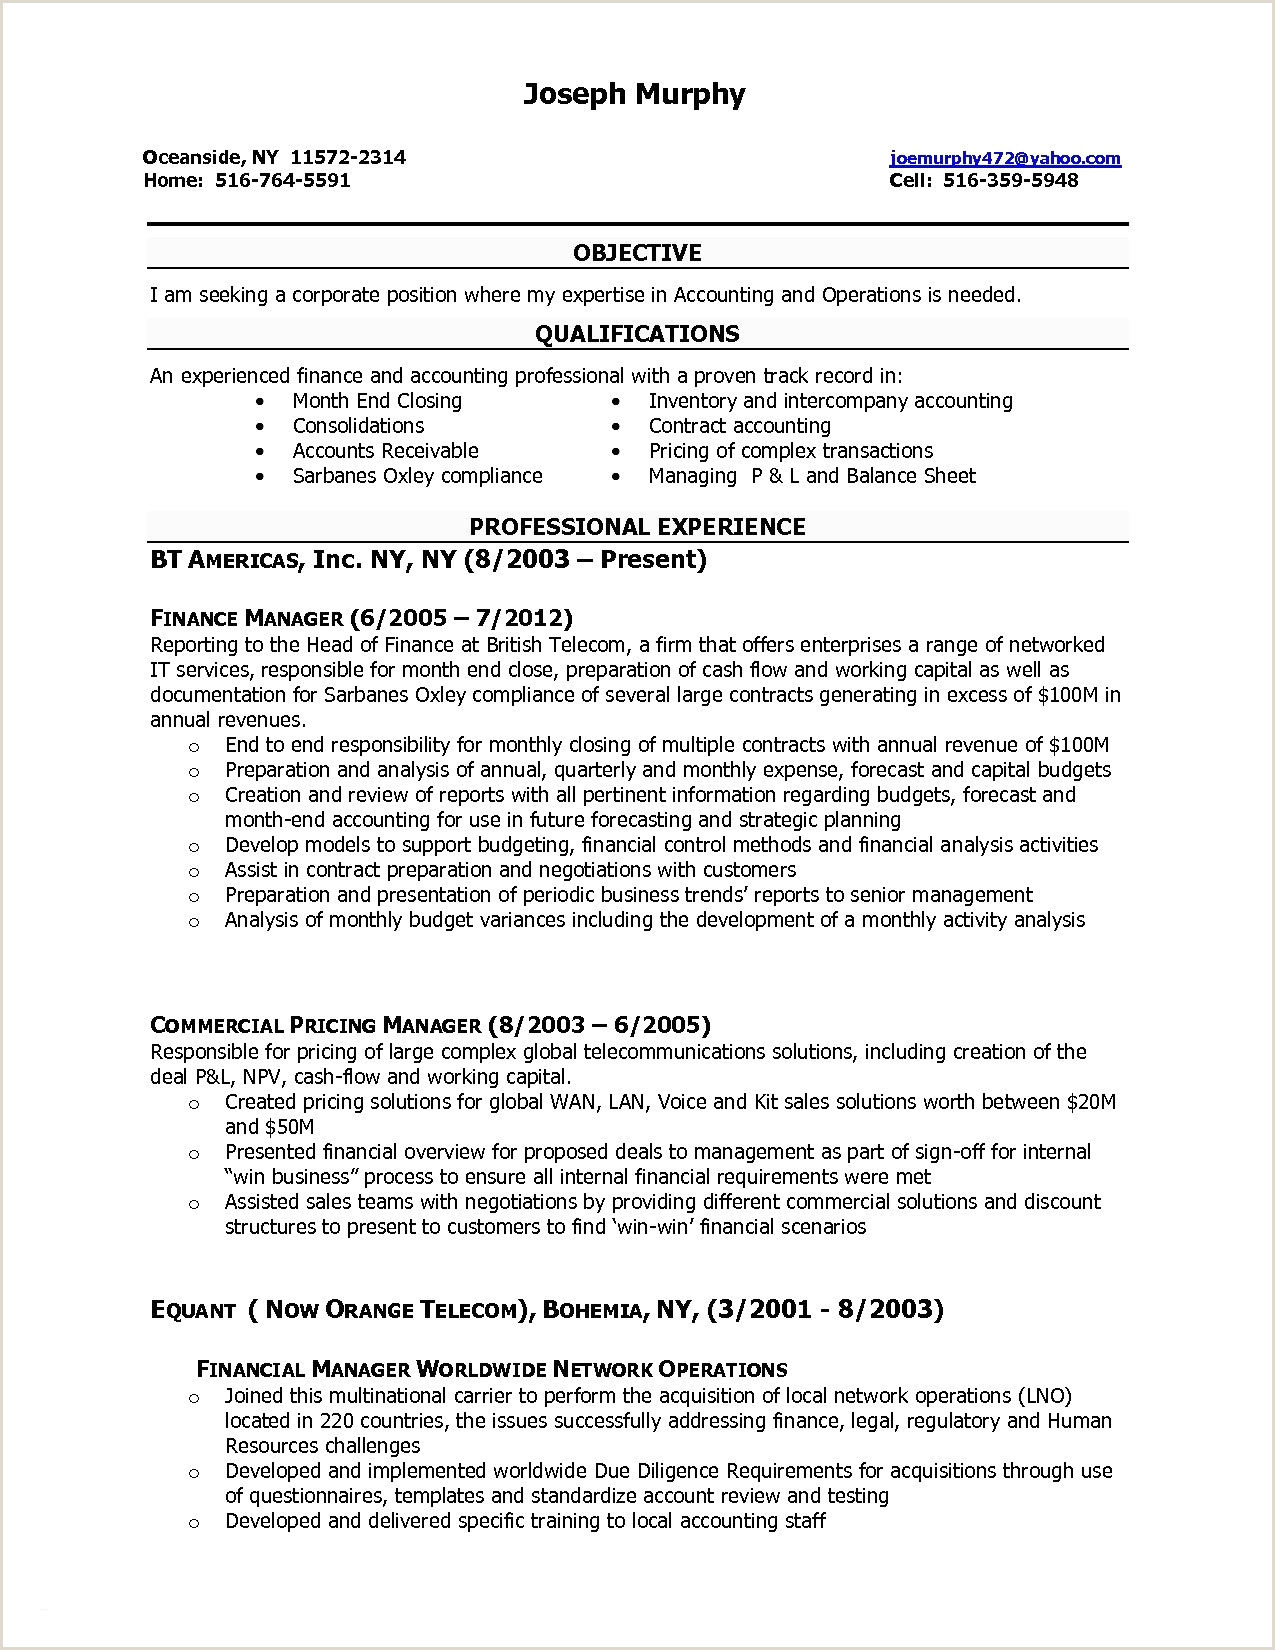 Resume format for Legal Job Fresh Accounting Resume Template